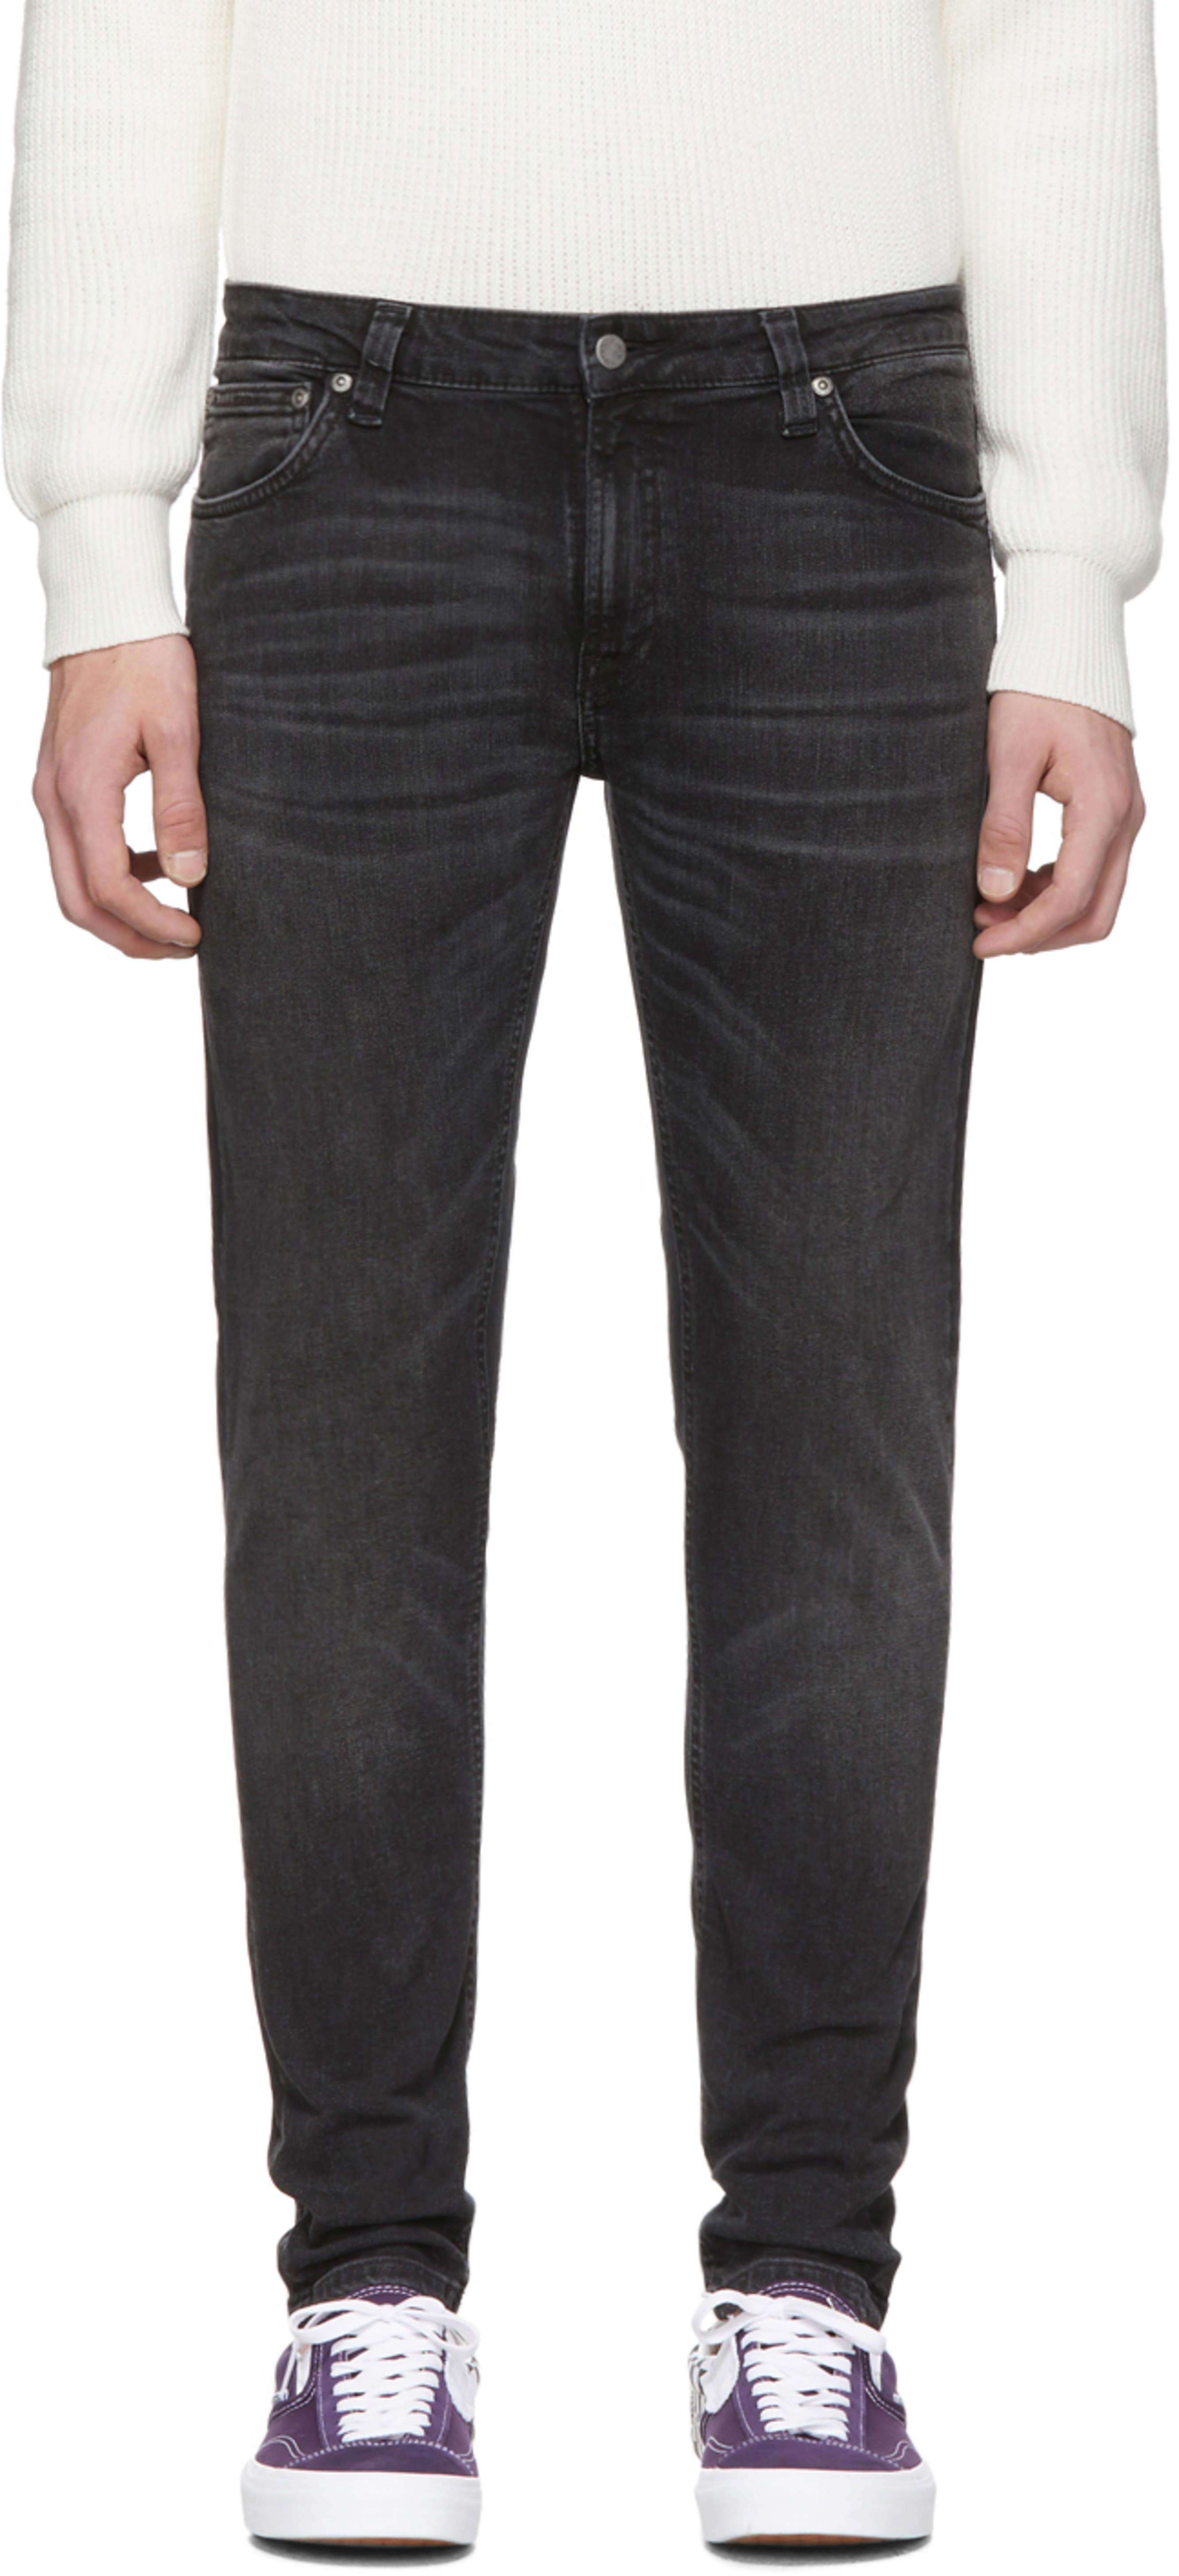 a93c400d40a5 Nudie Jeans for Men SS19 Collection